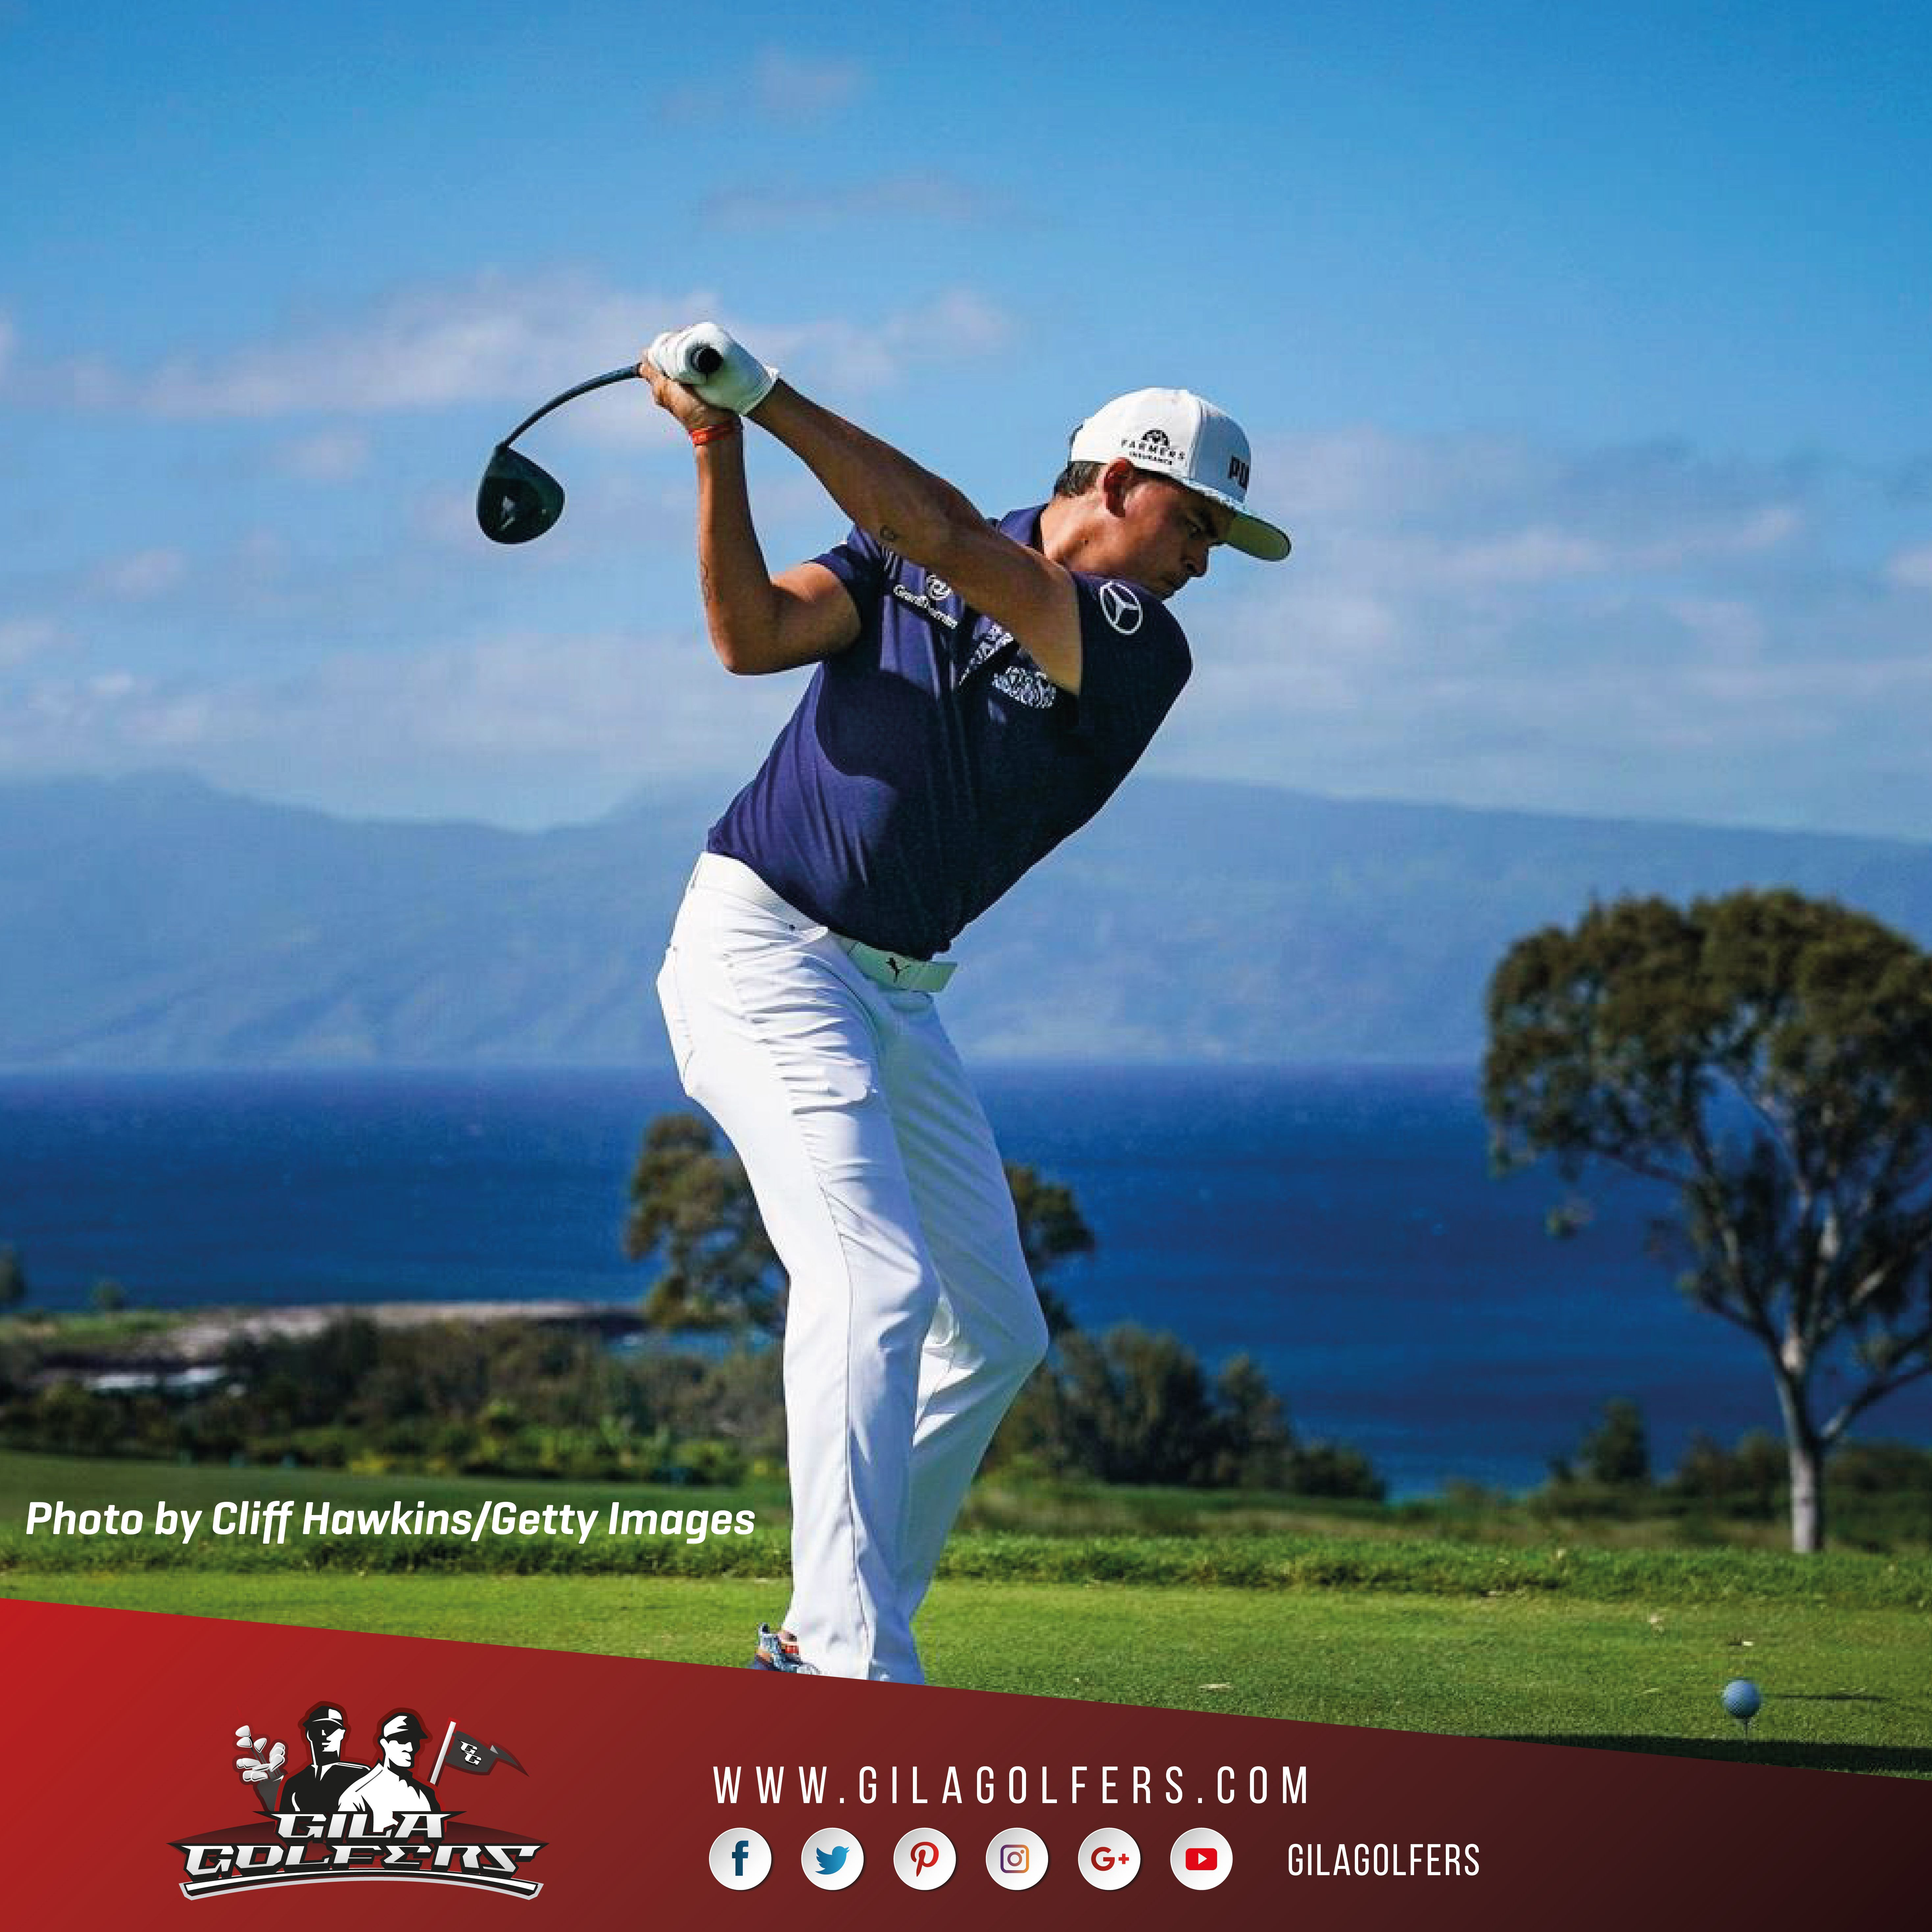 Sentry Tournament of Champions, Round 2 #rickiefowler #sentrytoc #pumagolf #pgatour #alohacollection now available at #mstgolf stores. To know more about the Aloha collection #GilaGolfers PGA TOUR